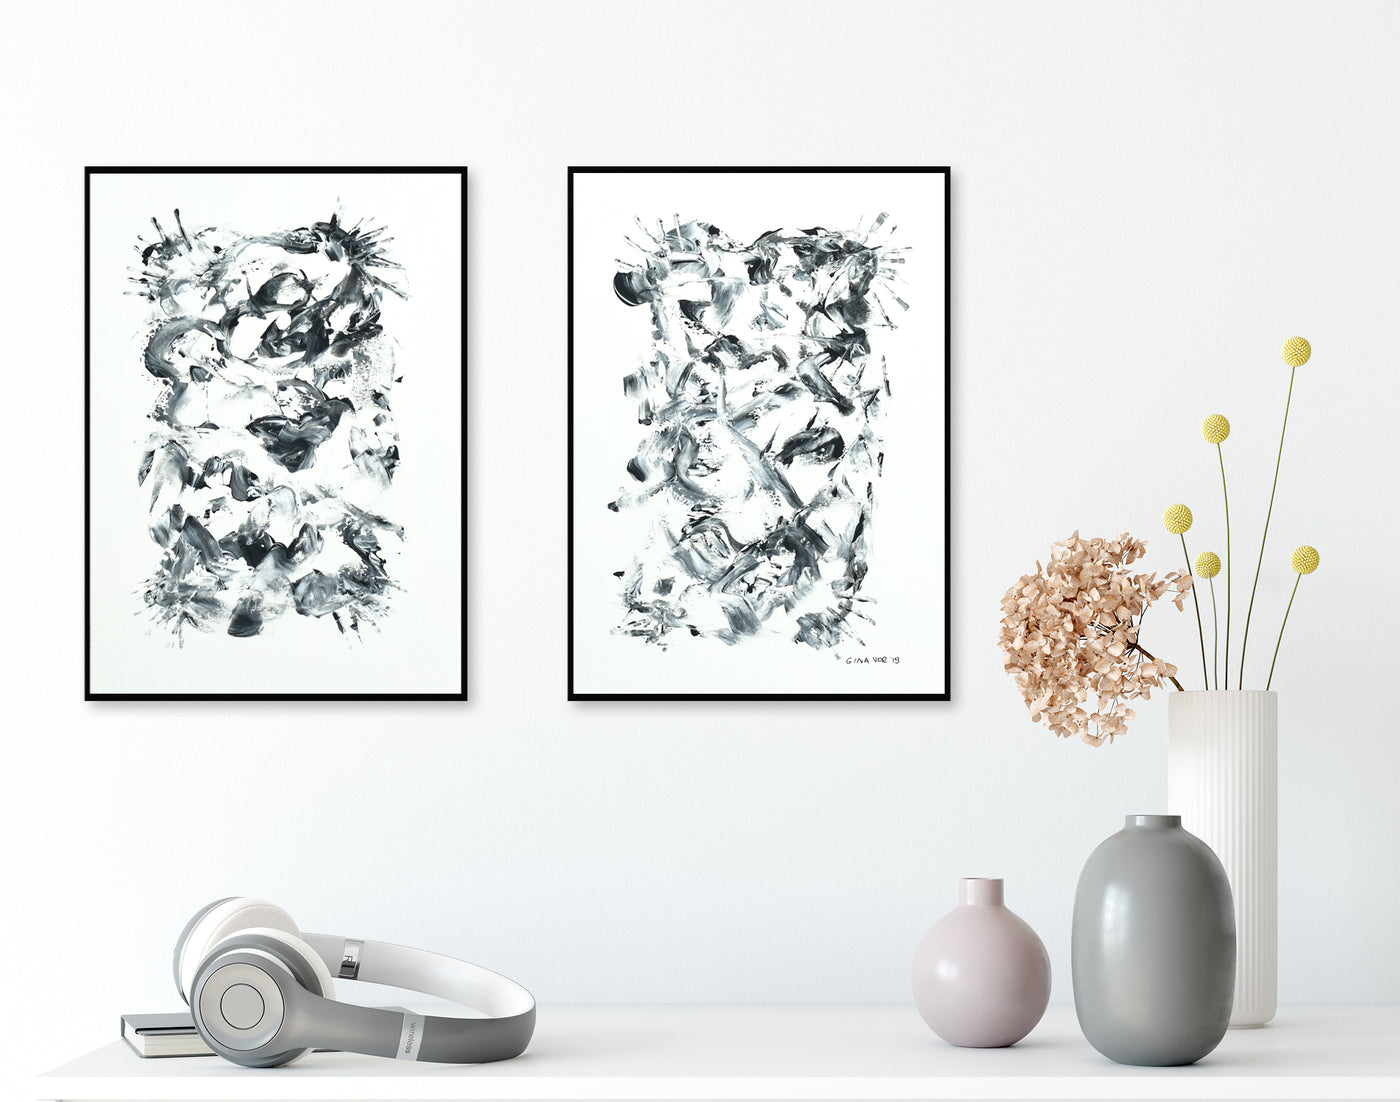 Set of two black and white abstract paintings